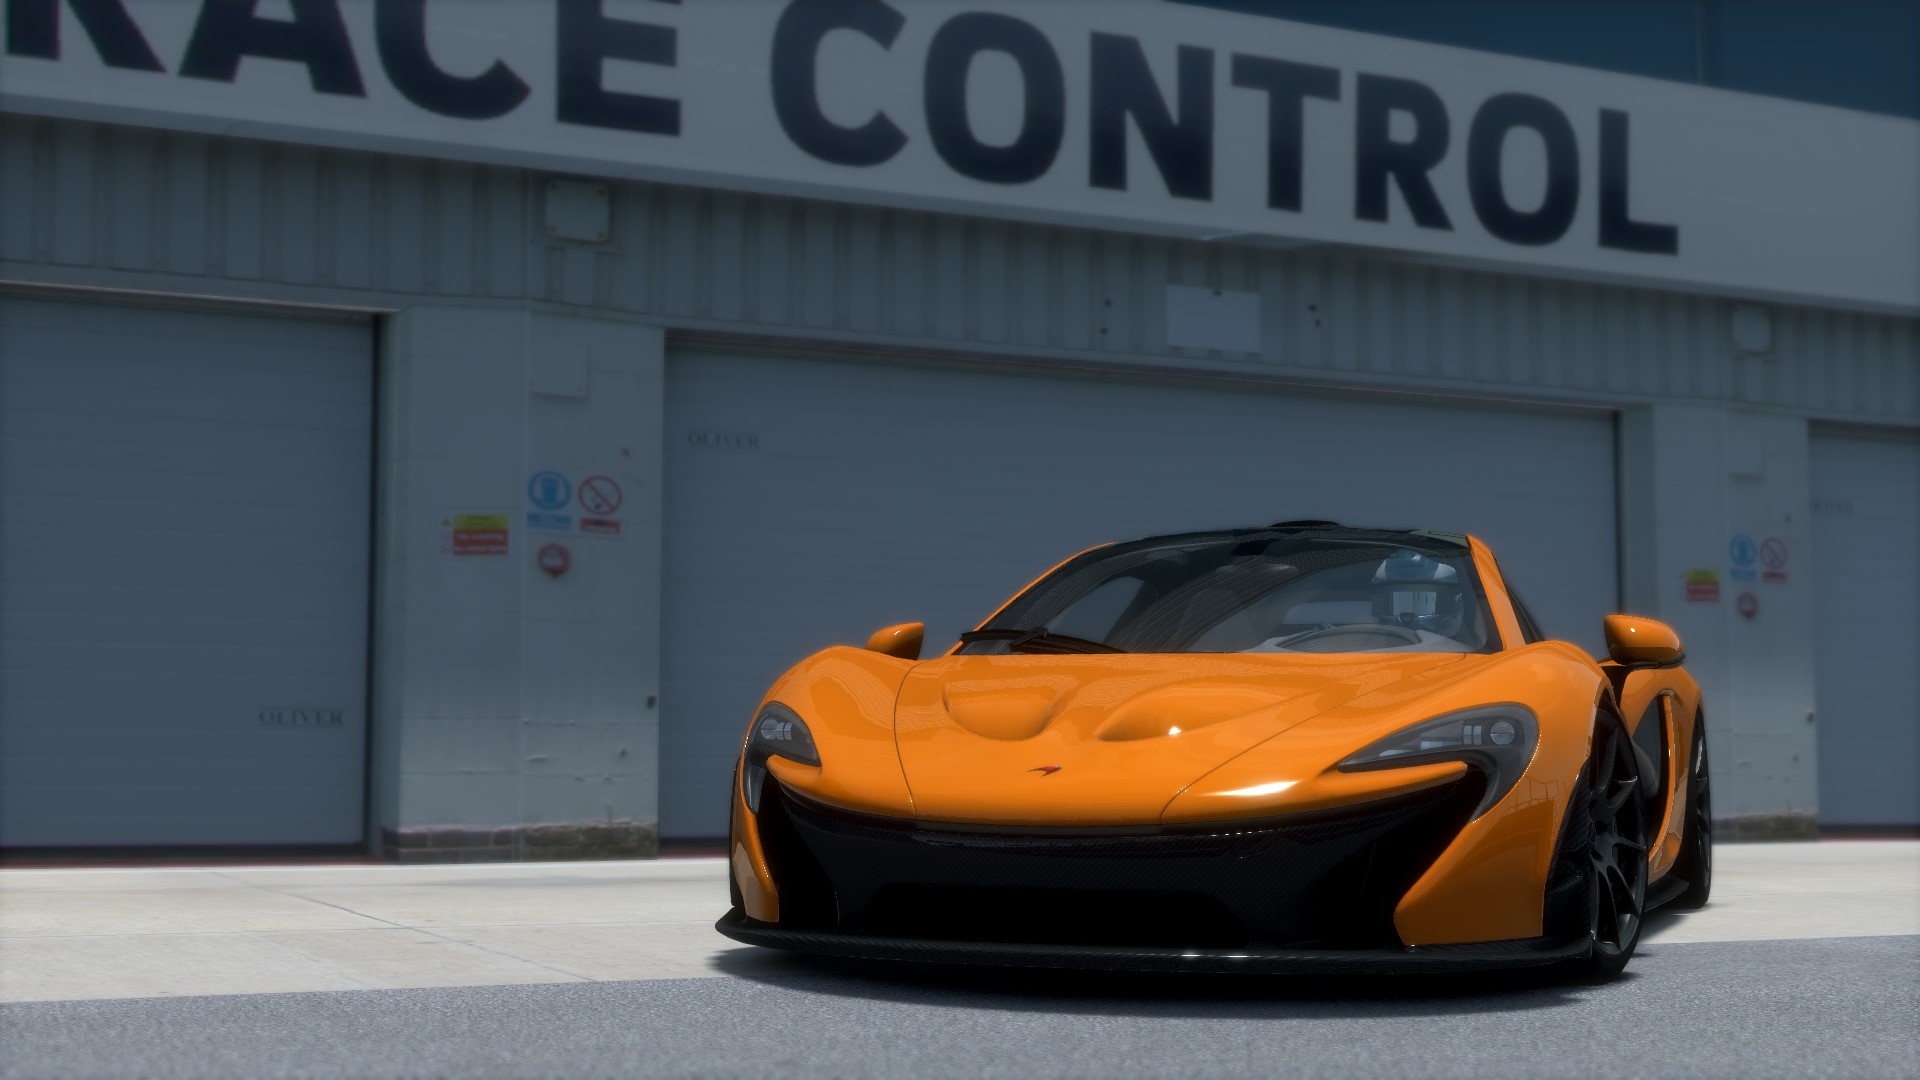 Screenshot_ks_mclaren_p1_silverstone-national_11-8-115-20-35-8.jpg